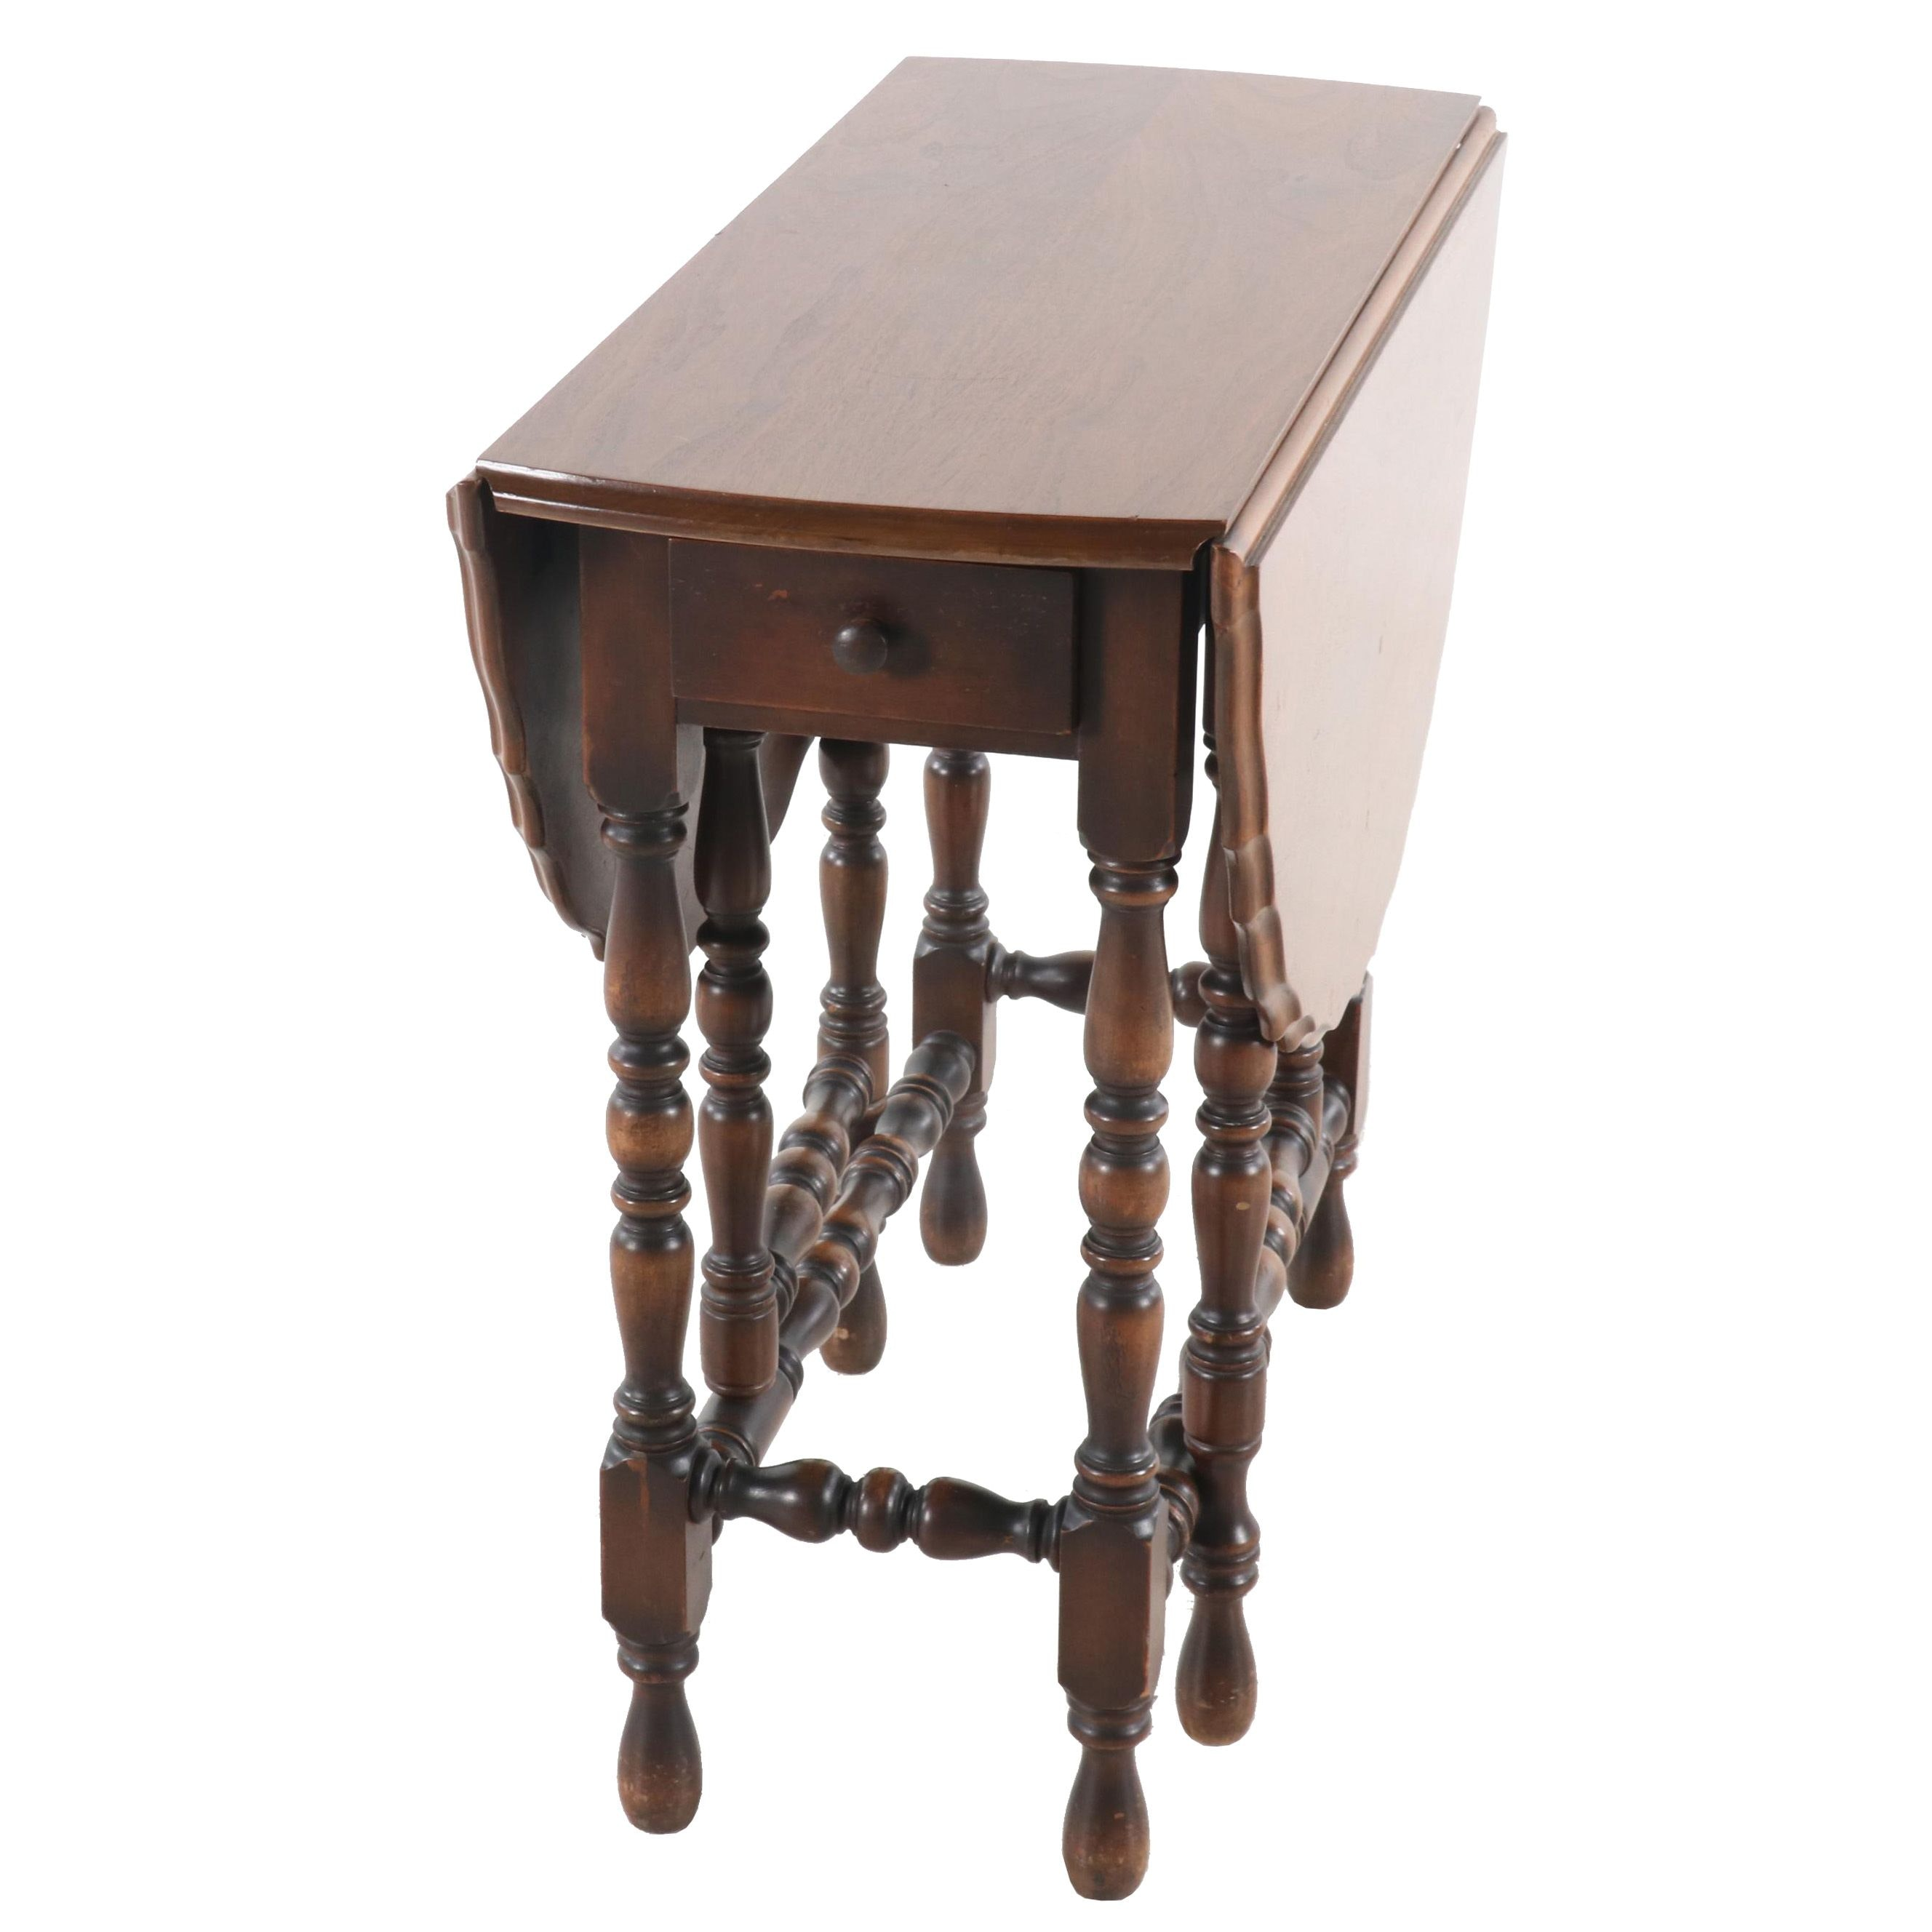 William & Mary Style Walnut Drop Leaf Table, Early to Mid 20th Century